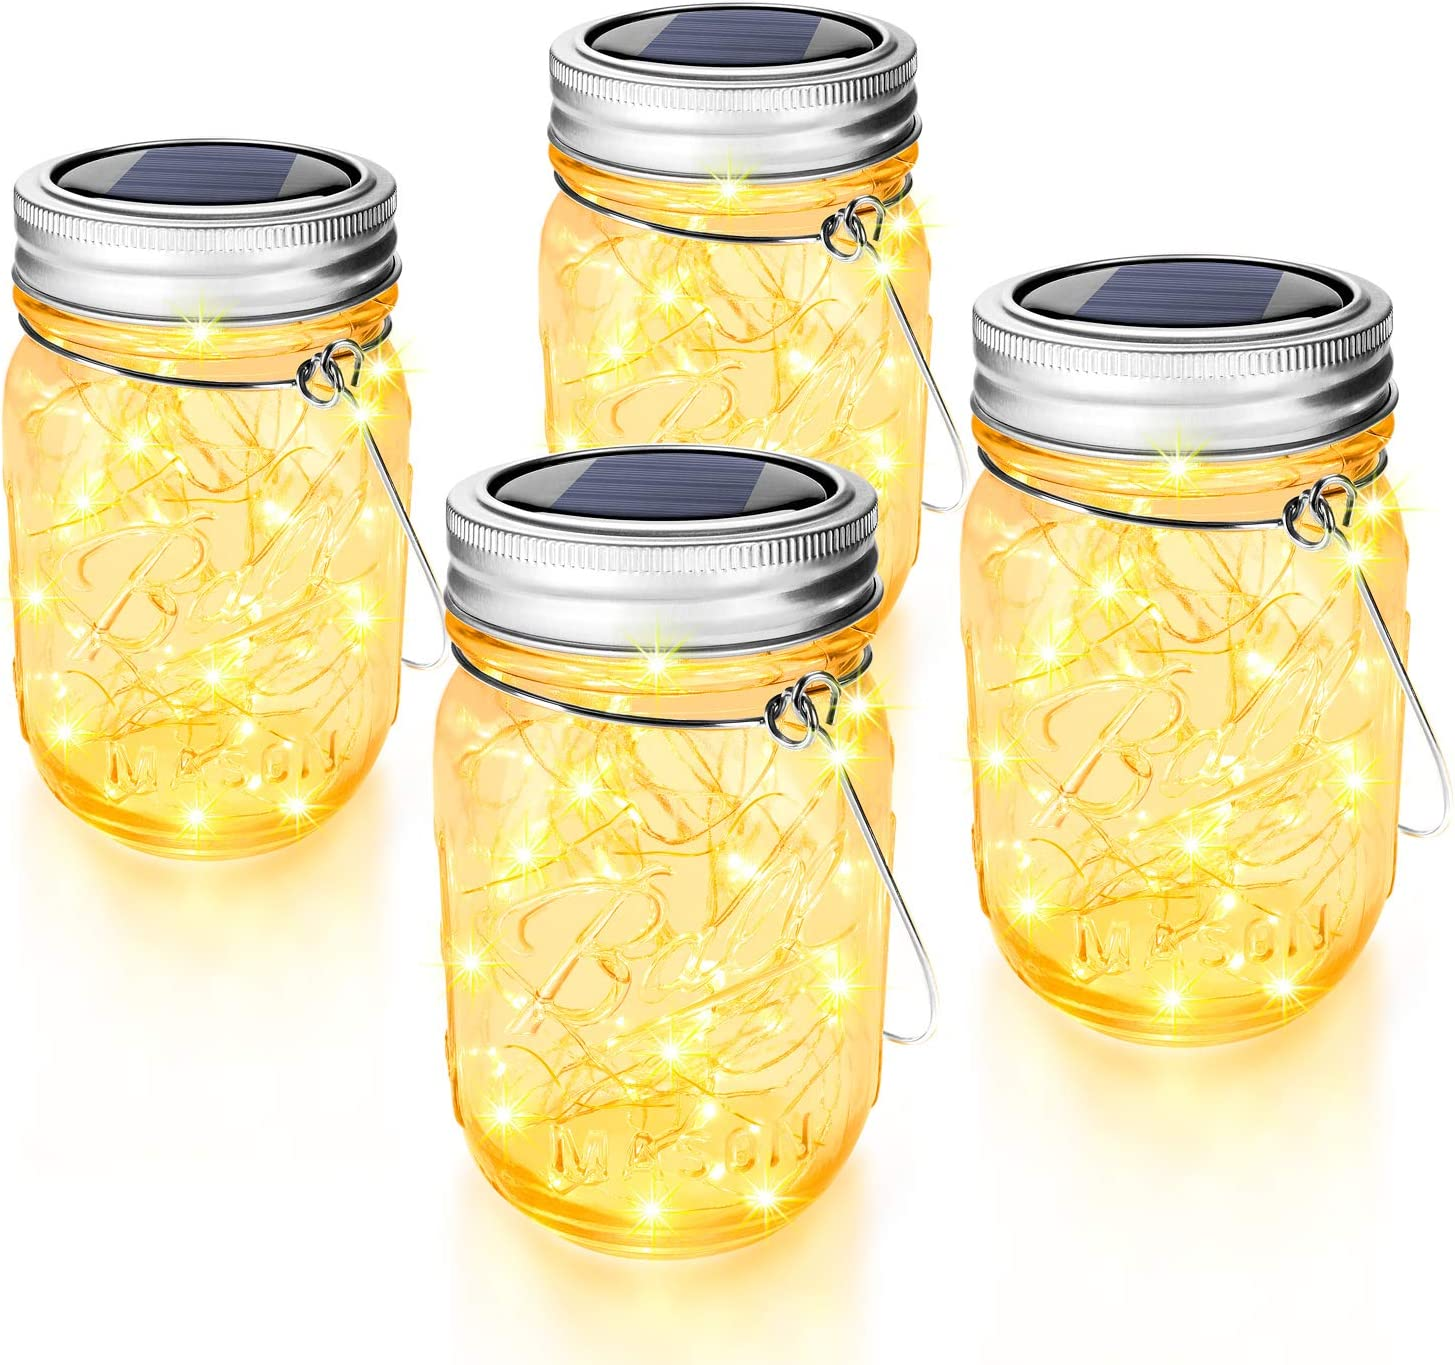 EASTCATO Mason Jar Solar Lights 30 LEDs,6 Pack Hanging Solar Lights Outdoor,Waterproof Solar Lanterns for Patio Party Garden Christmas Decorations Lights Hangers and Jars Included-Warm White